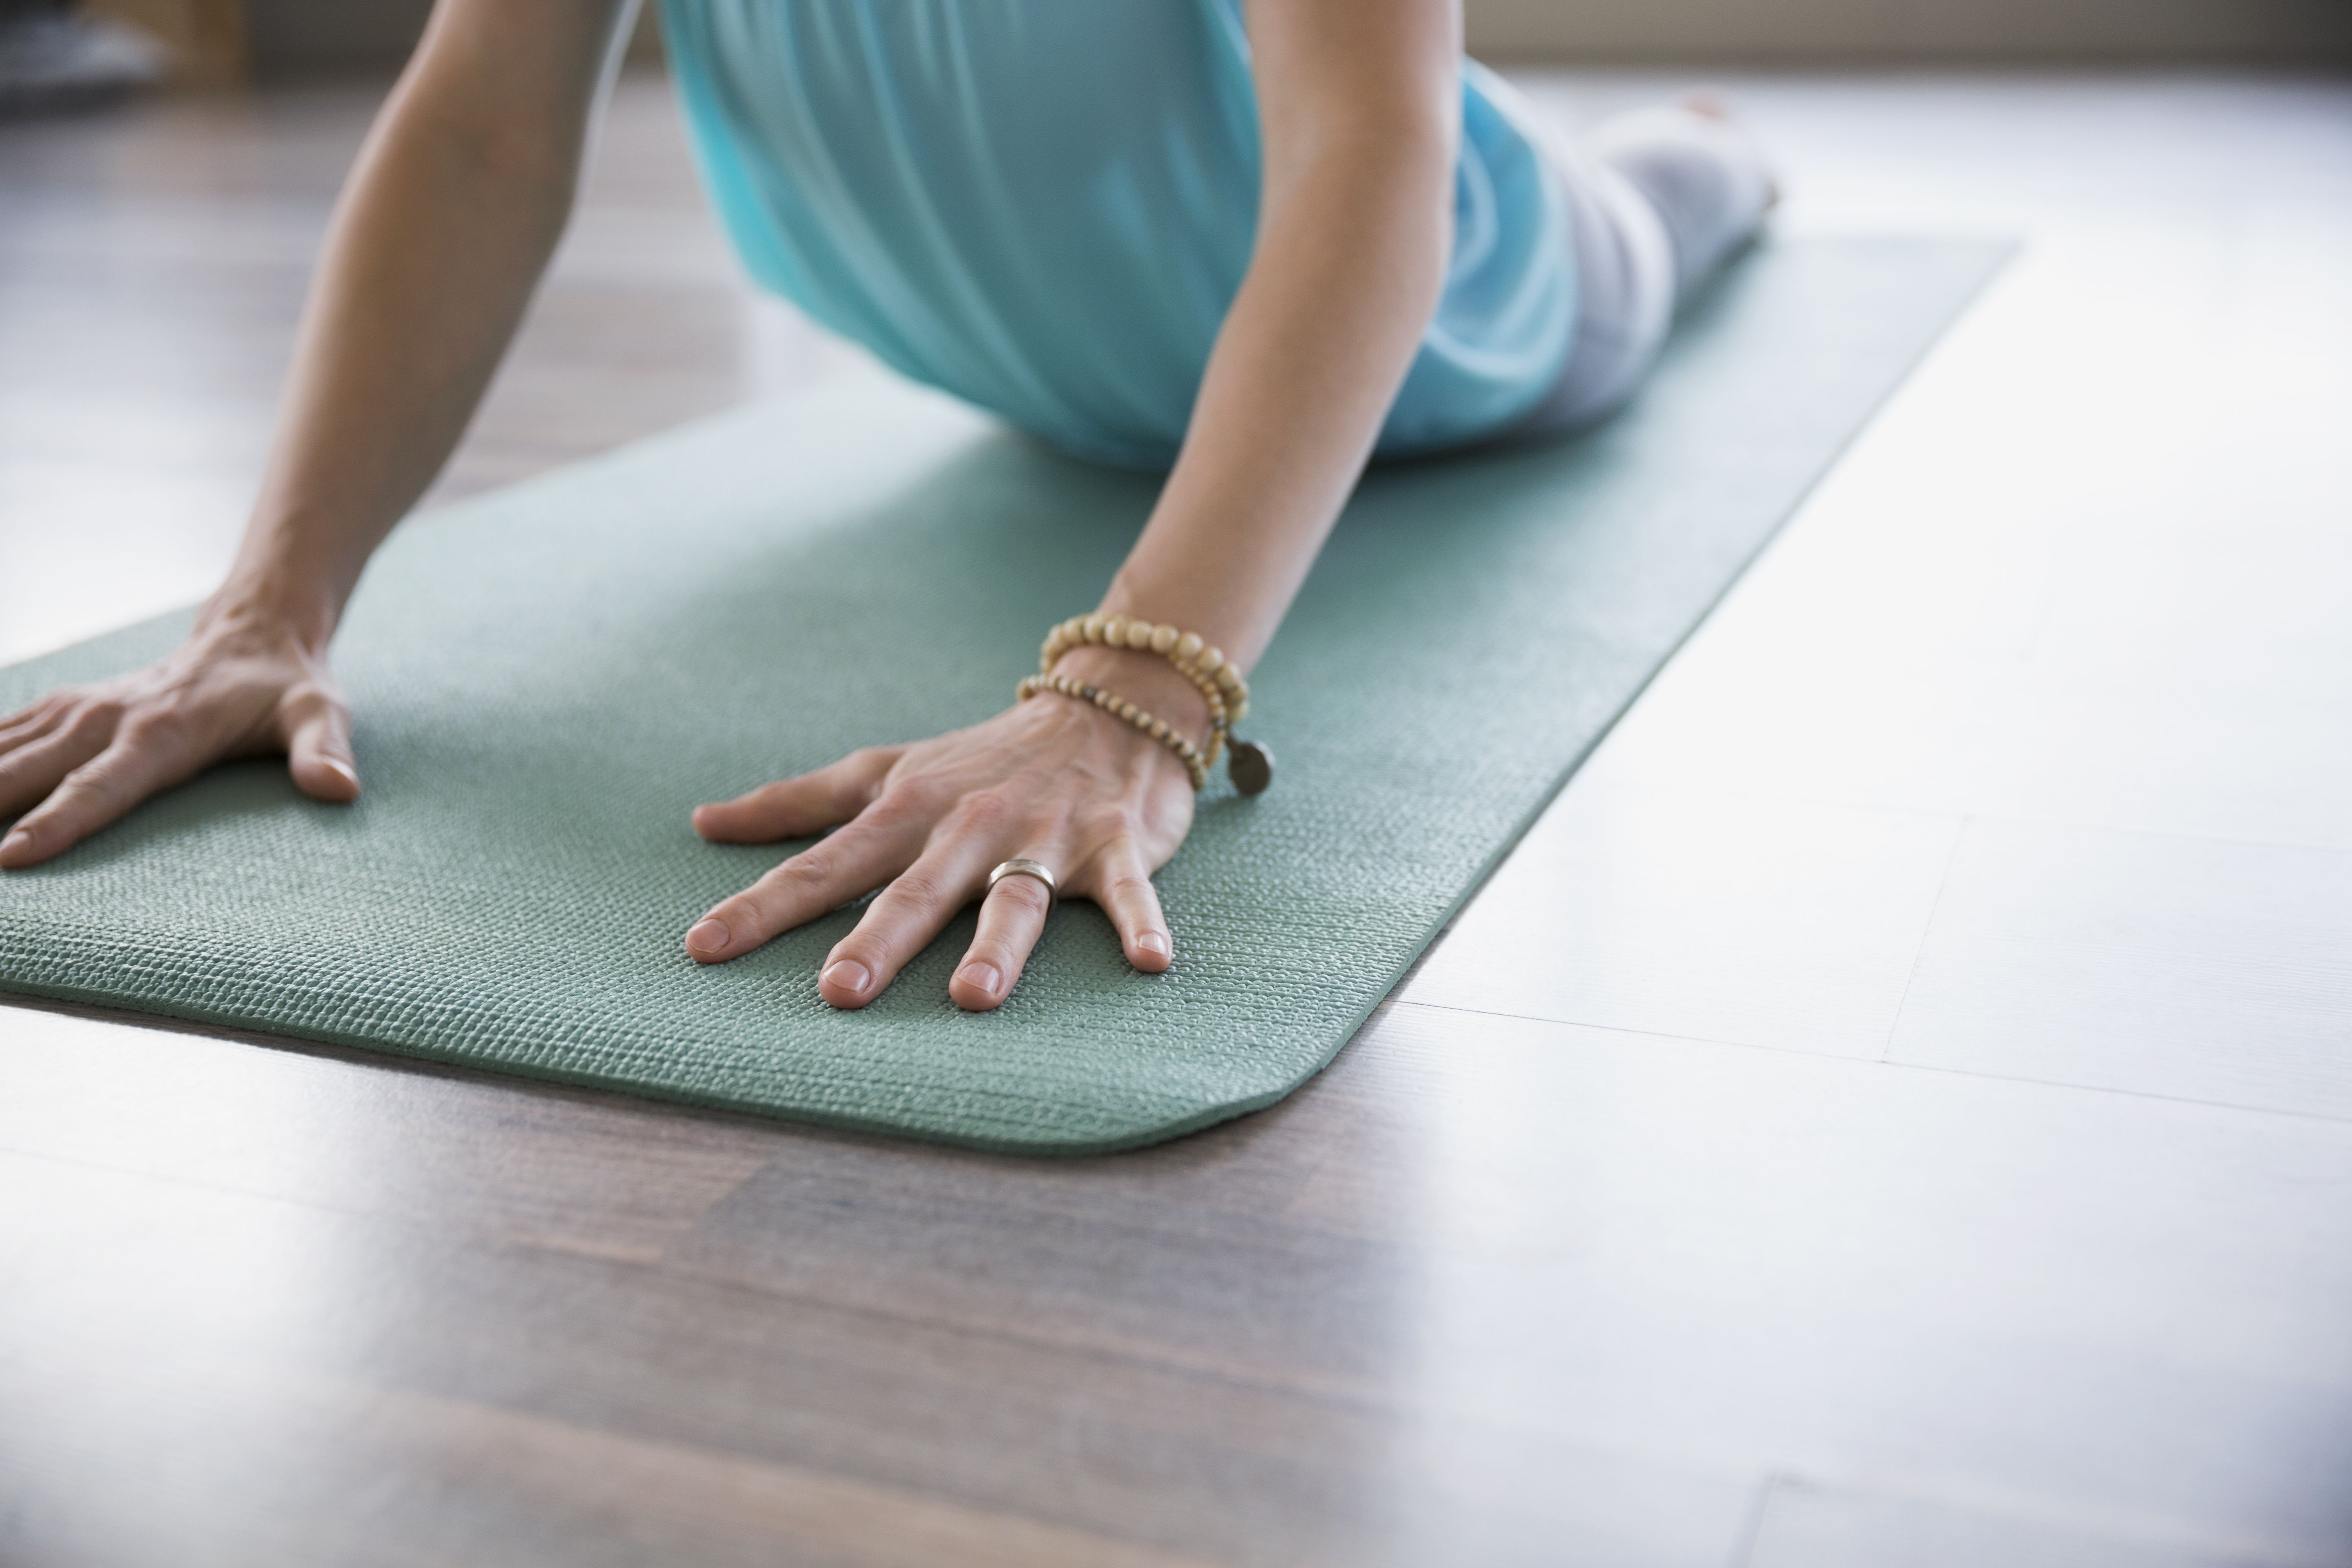 What To Do About A Slippery Yoga Mat